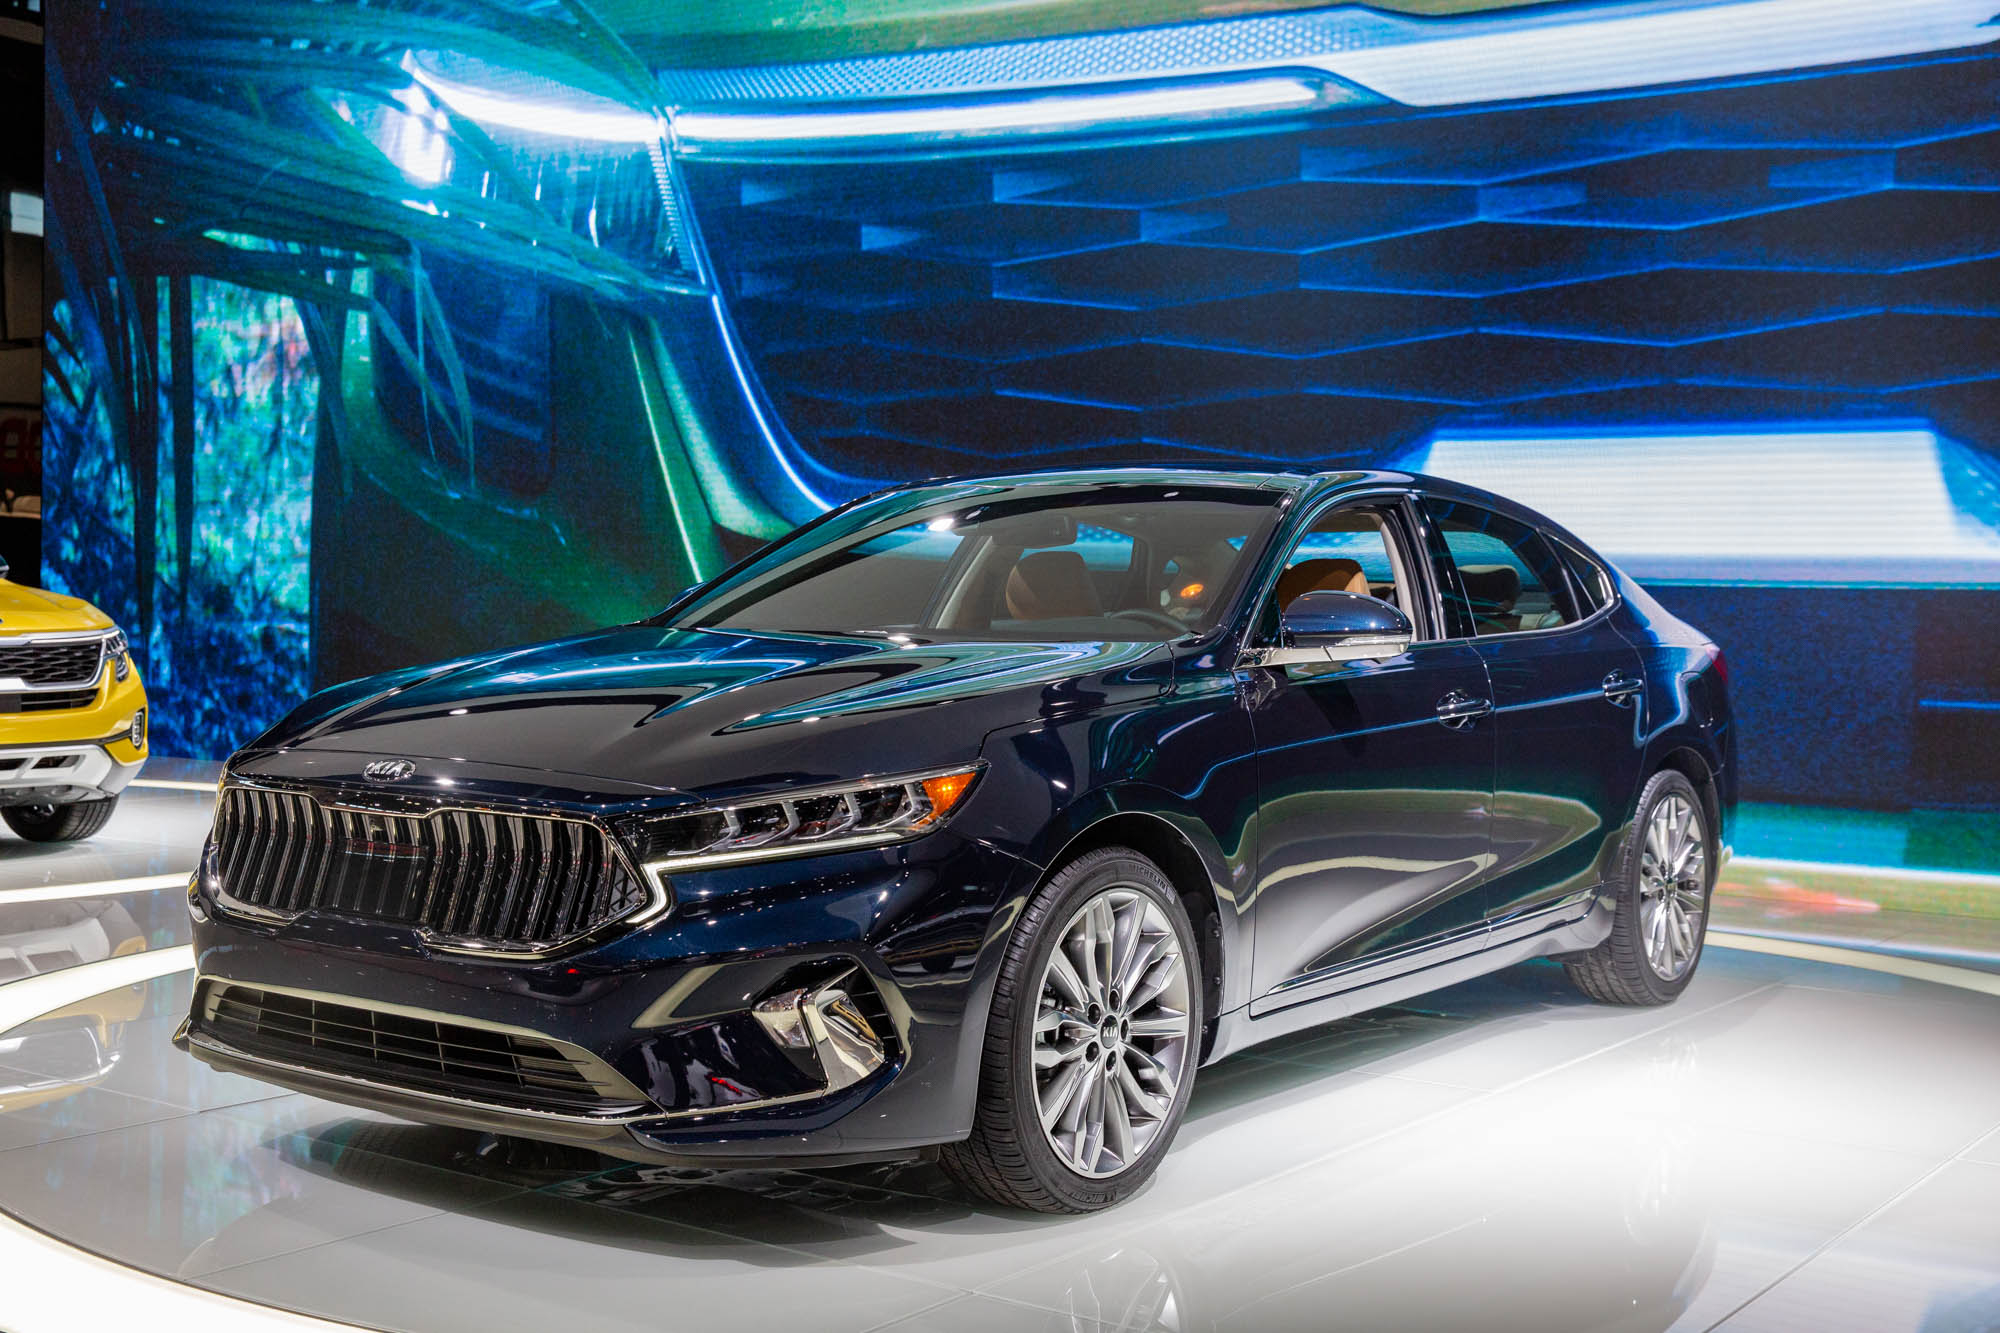 2020 Kia Cadenza Gets Better Looking, More Driver-Assistance - 2022 Kia Cadenza Usa Performance, Changes, Release Date